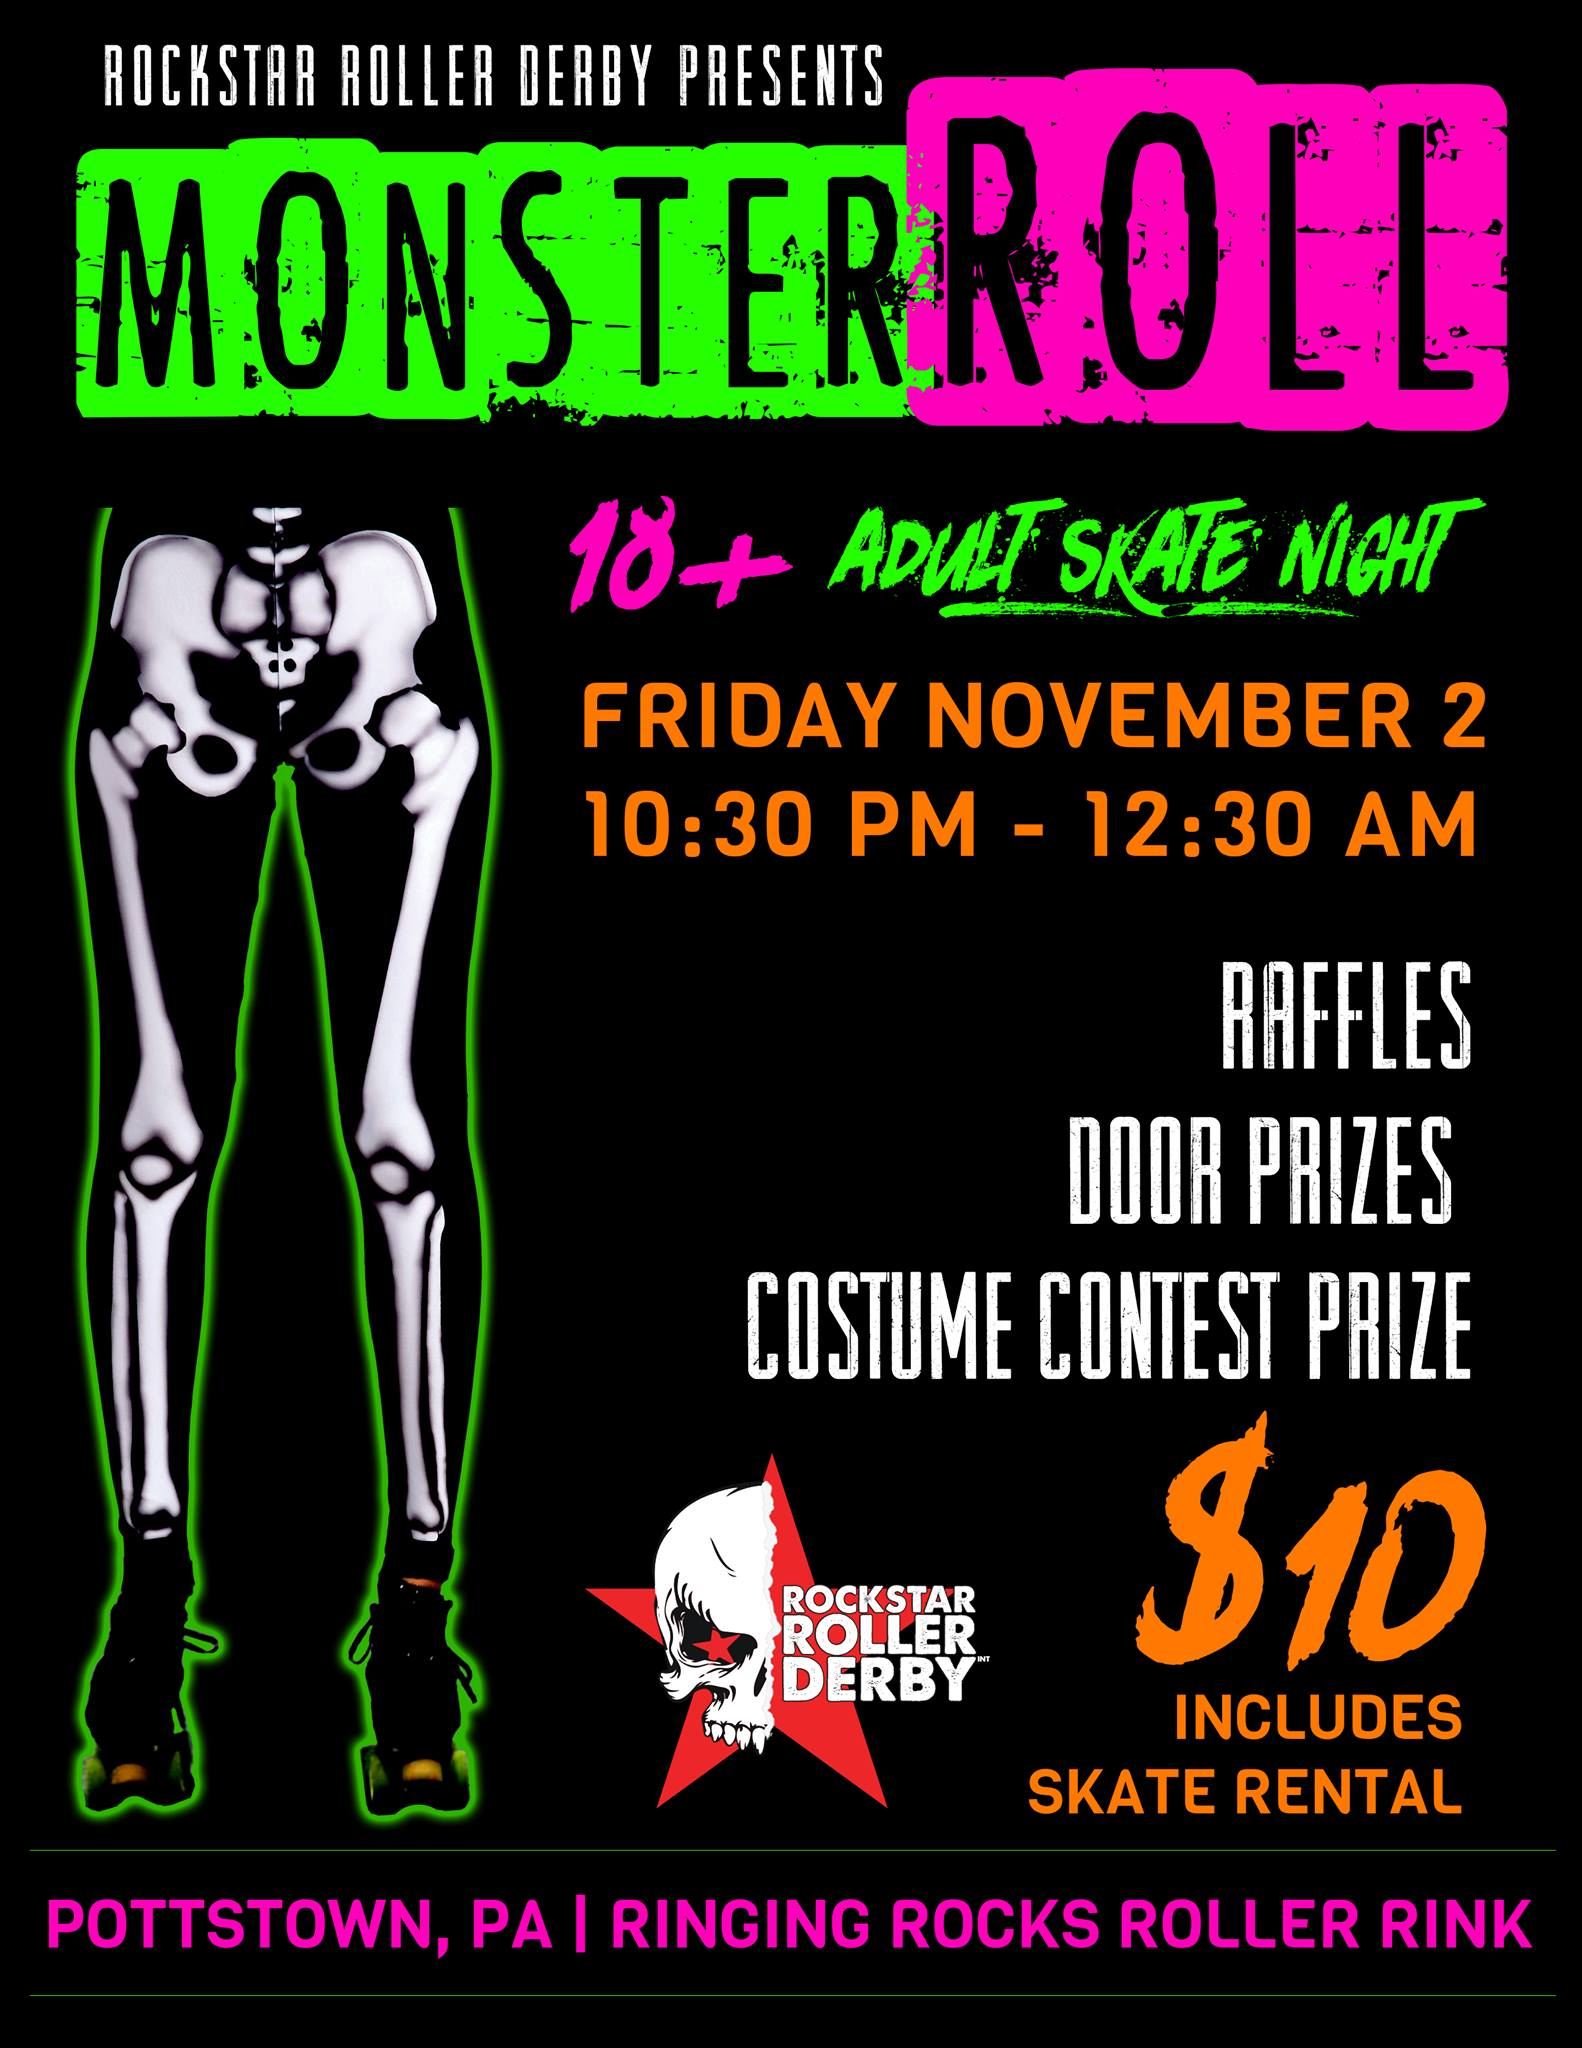 Adult Skate Part - Monster's Roll